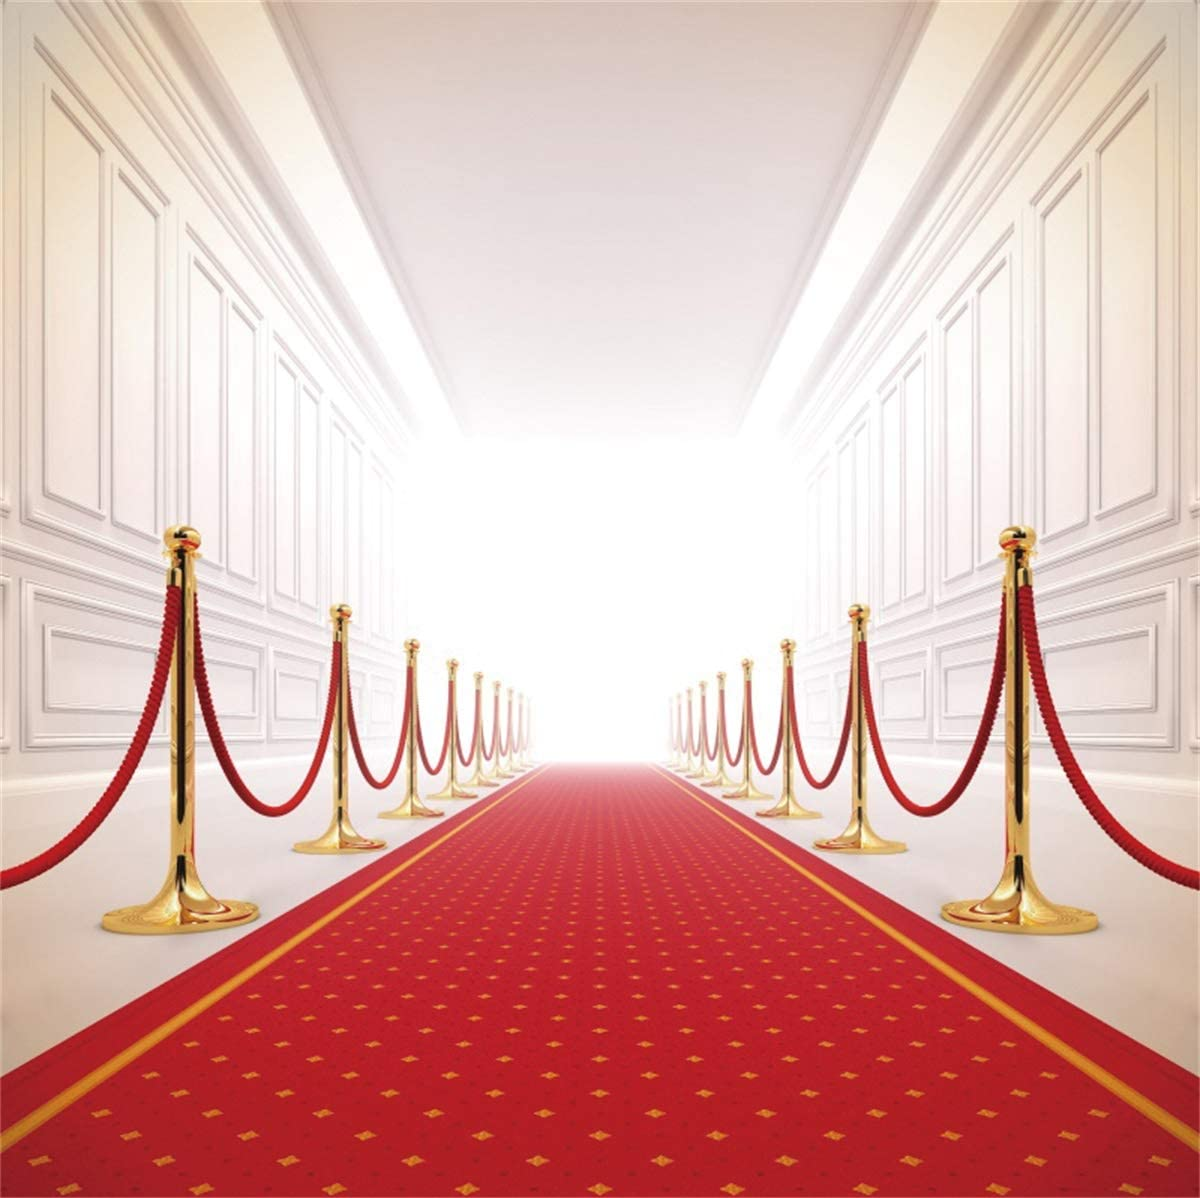 YEELE Luxury Red Carpet Event Backdrop 6.5x6.5ft Gala Prestige Cinema Hall Success Photography Background Birthday Quinceanera Wedding Stage Kids Adults Portrait Photobooth Props Digital Wallpaper